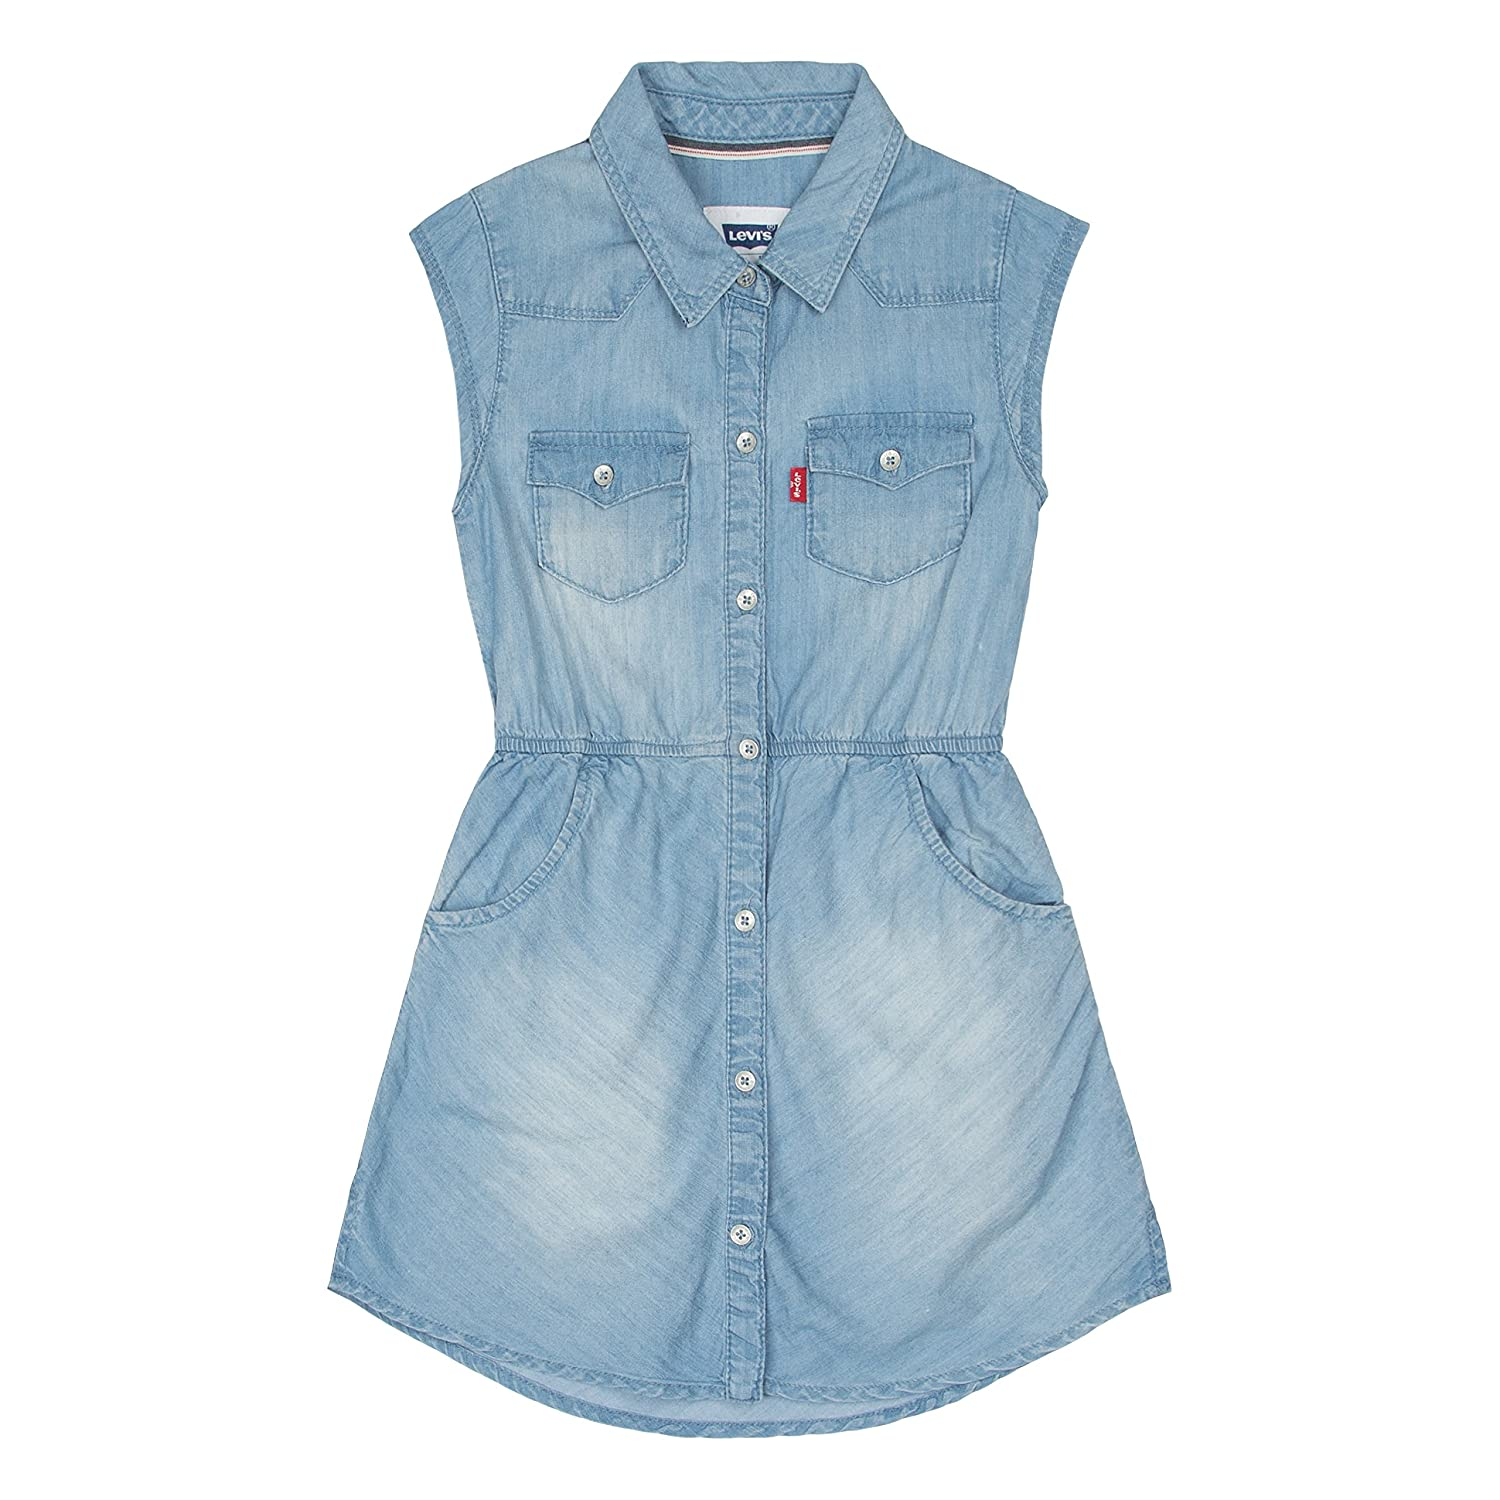 Amazon.com: Levi&39s Girls Levis Lightweight Denim Jumper Dress ...